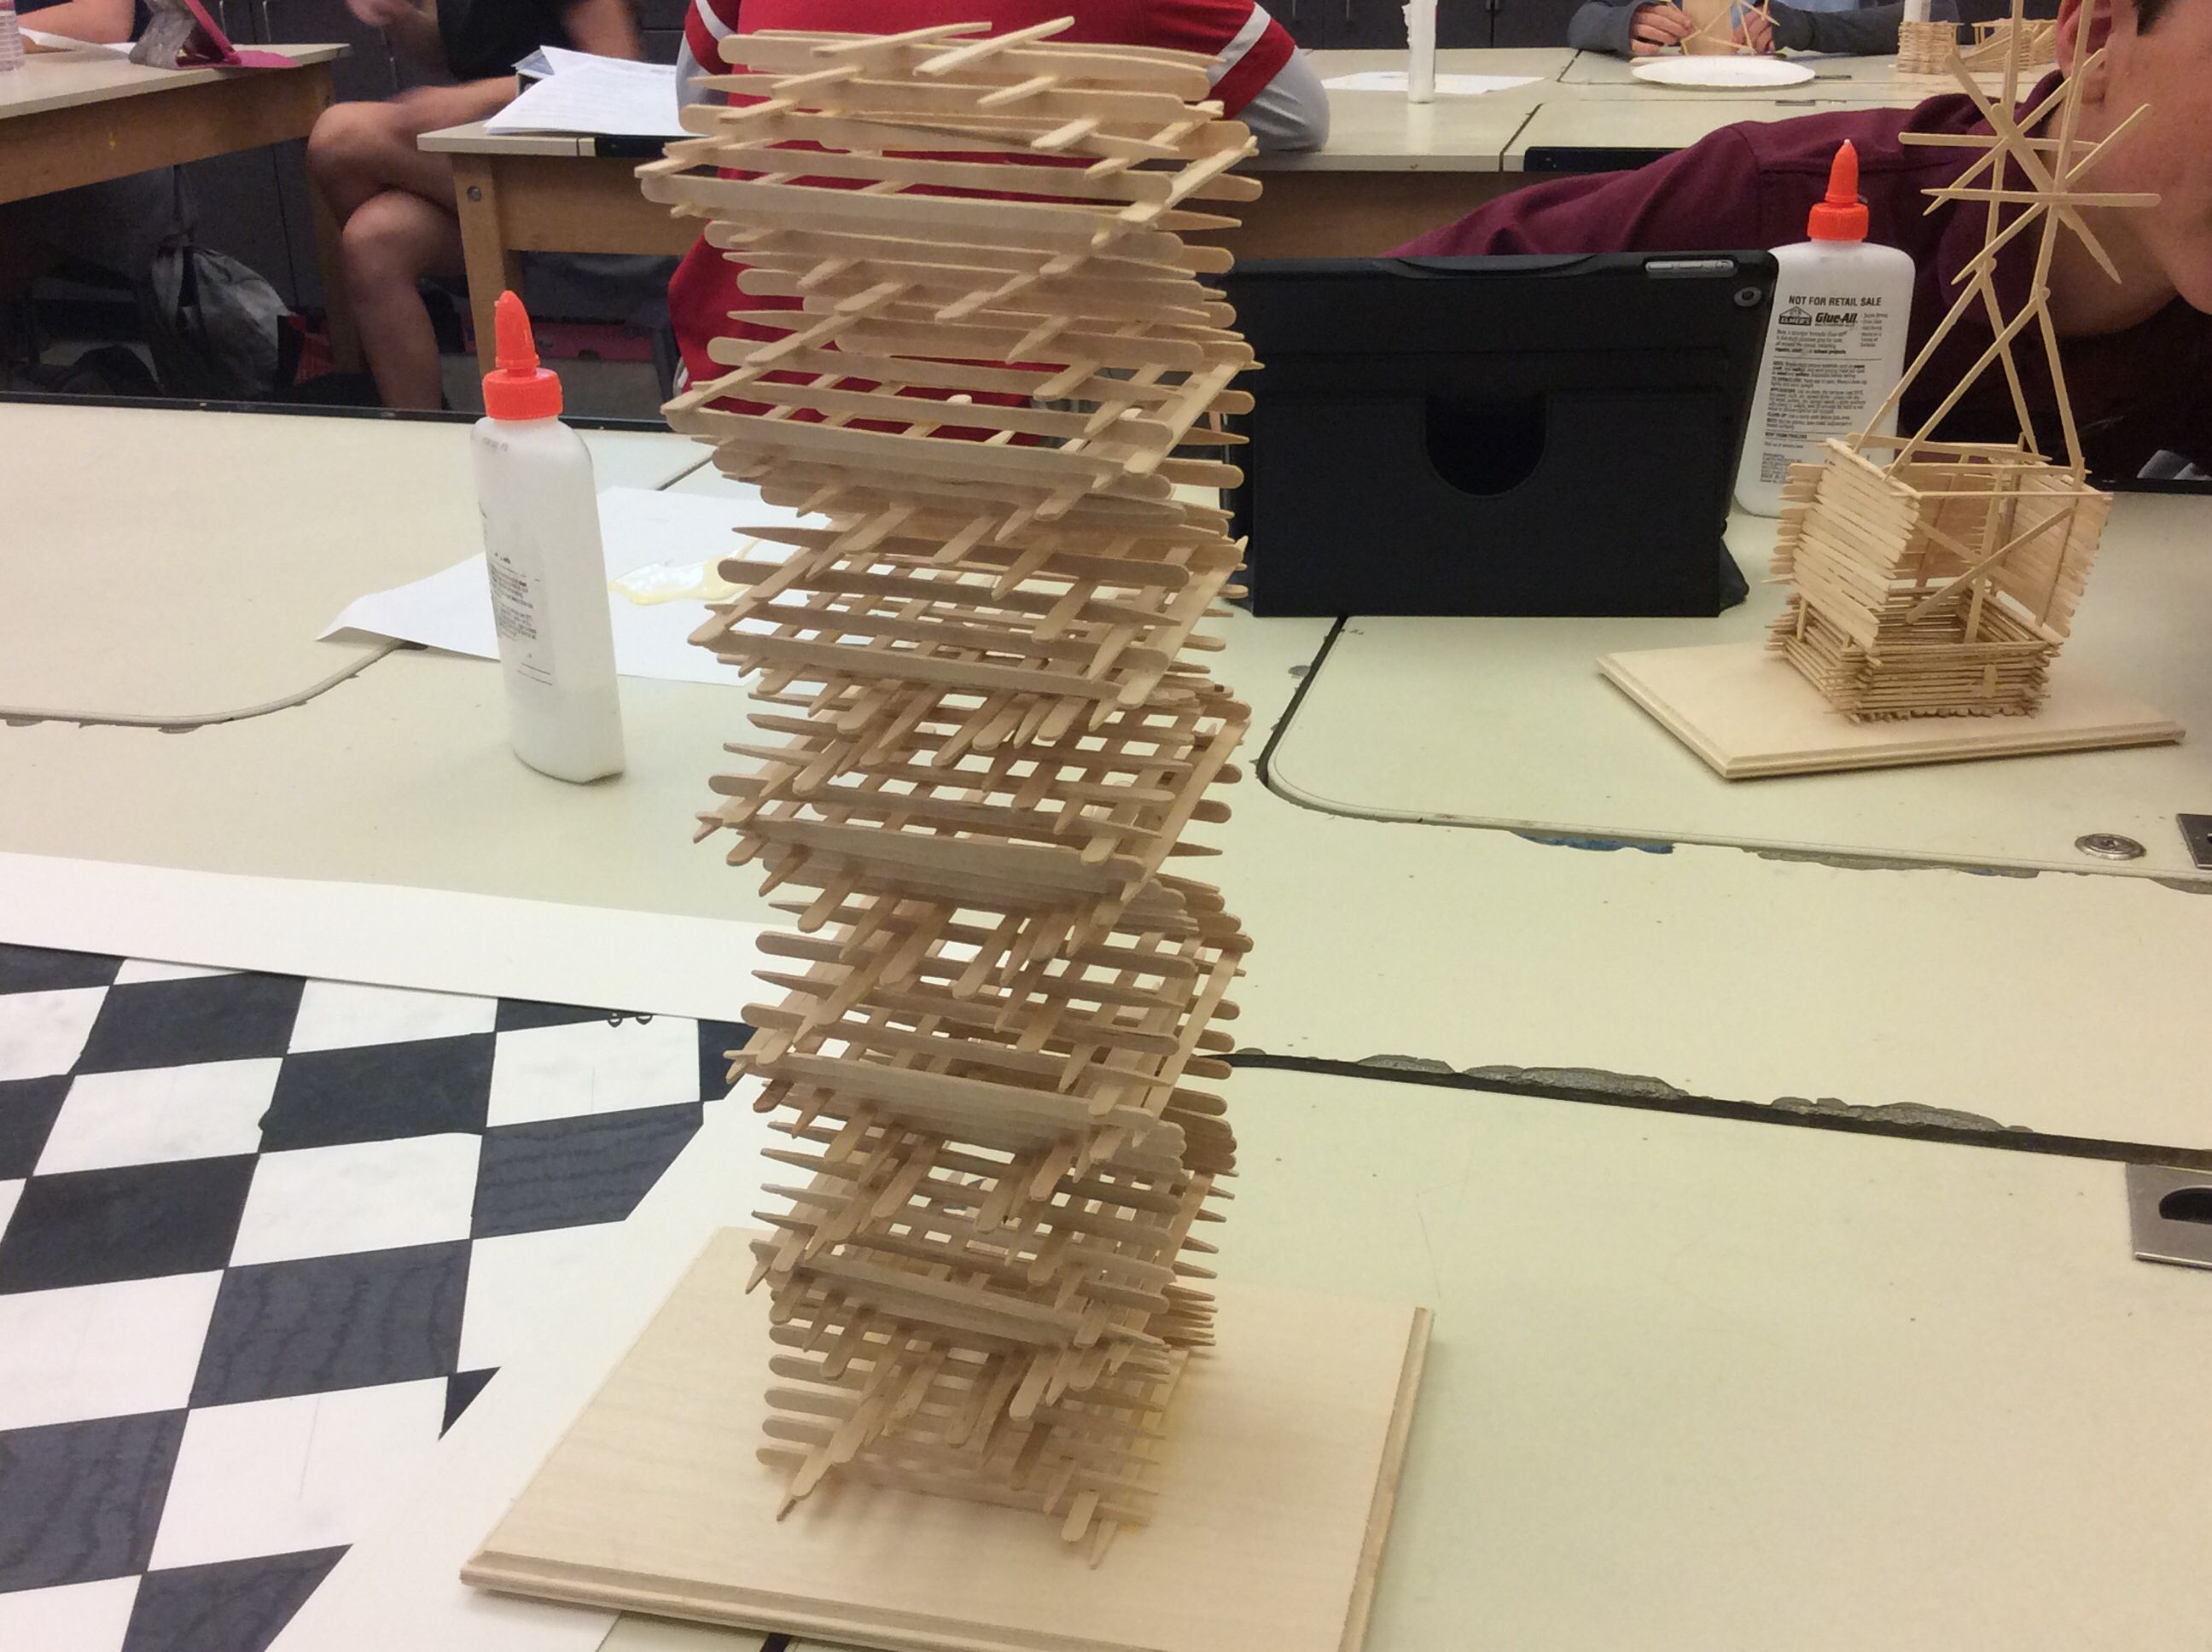 This Is My Tower That I Made Out Of Tooth Picks It Is Barely 12 Inches Tall And 3 1 2 Inches Wide I Used Glue And Toothpicks To Art Class Pattern How To Make